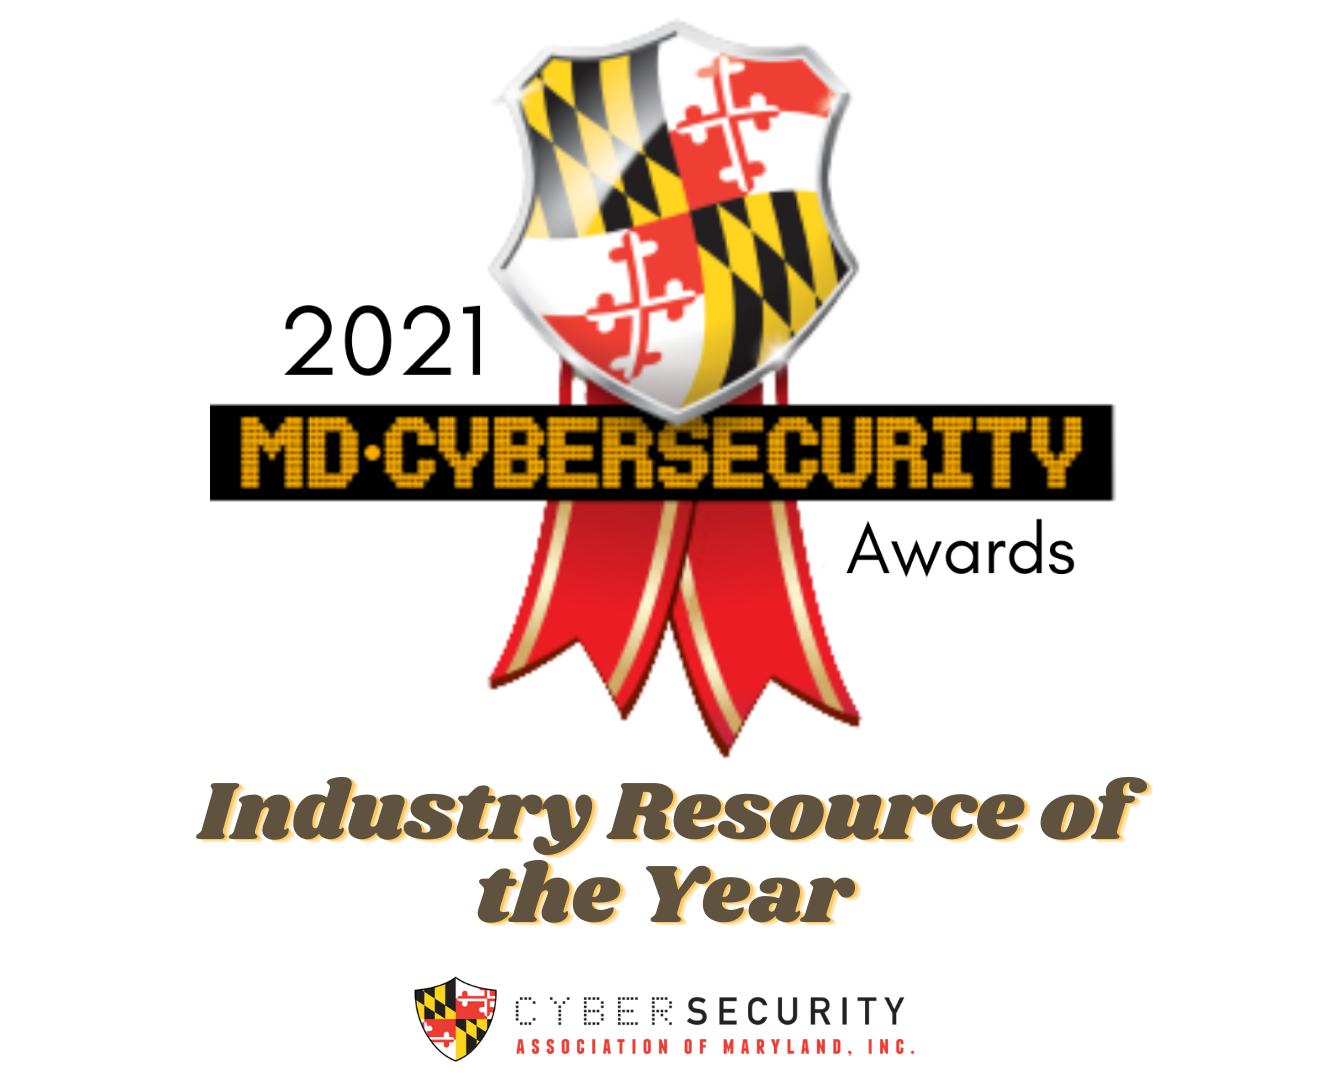 Industry Resource of the Year Award Badge